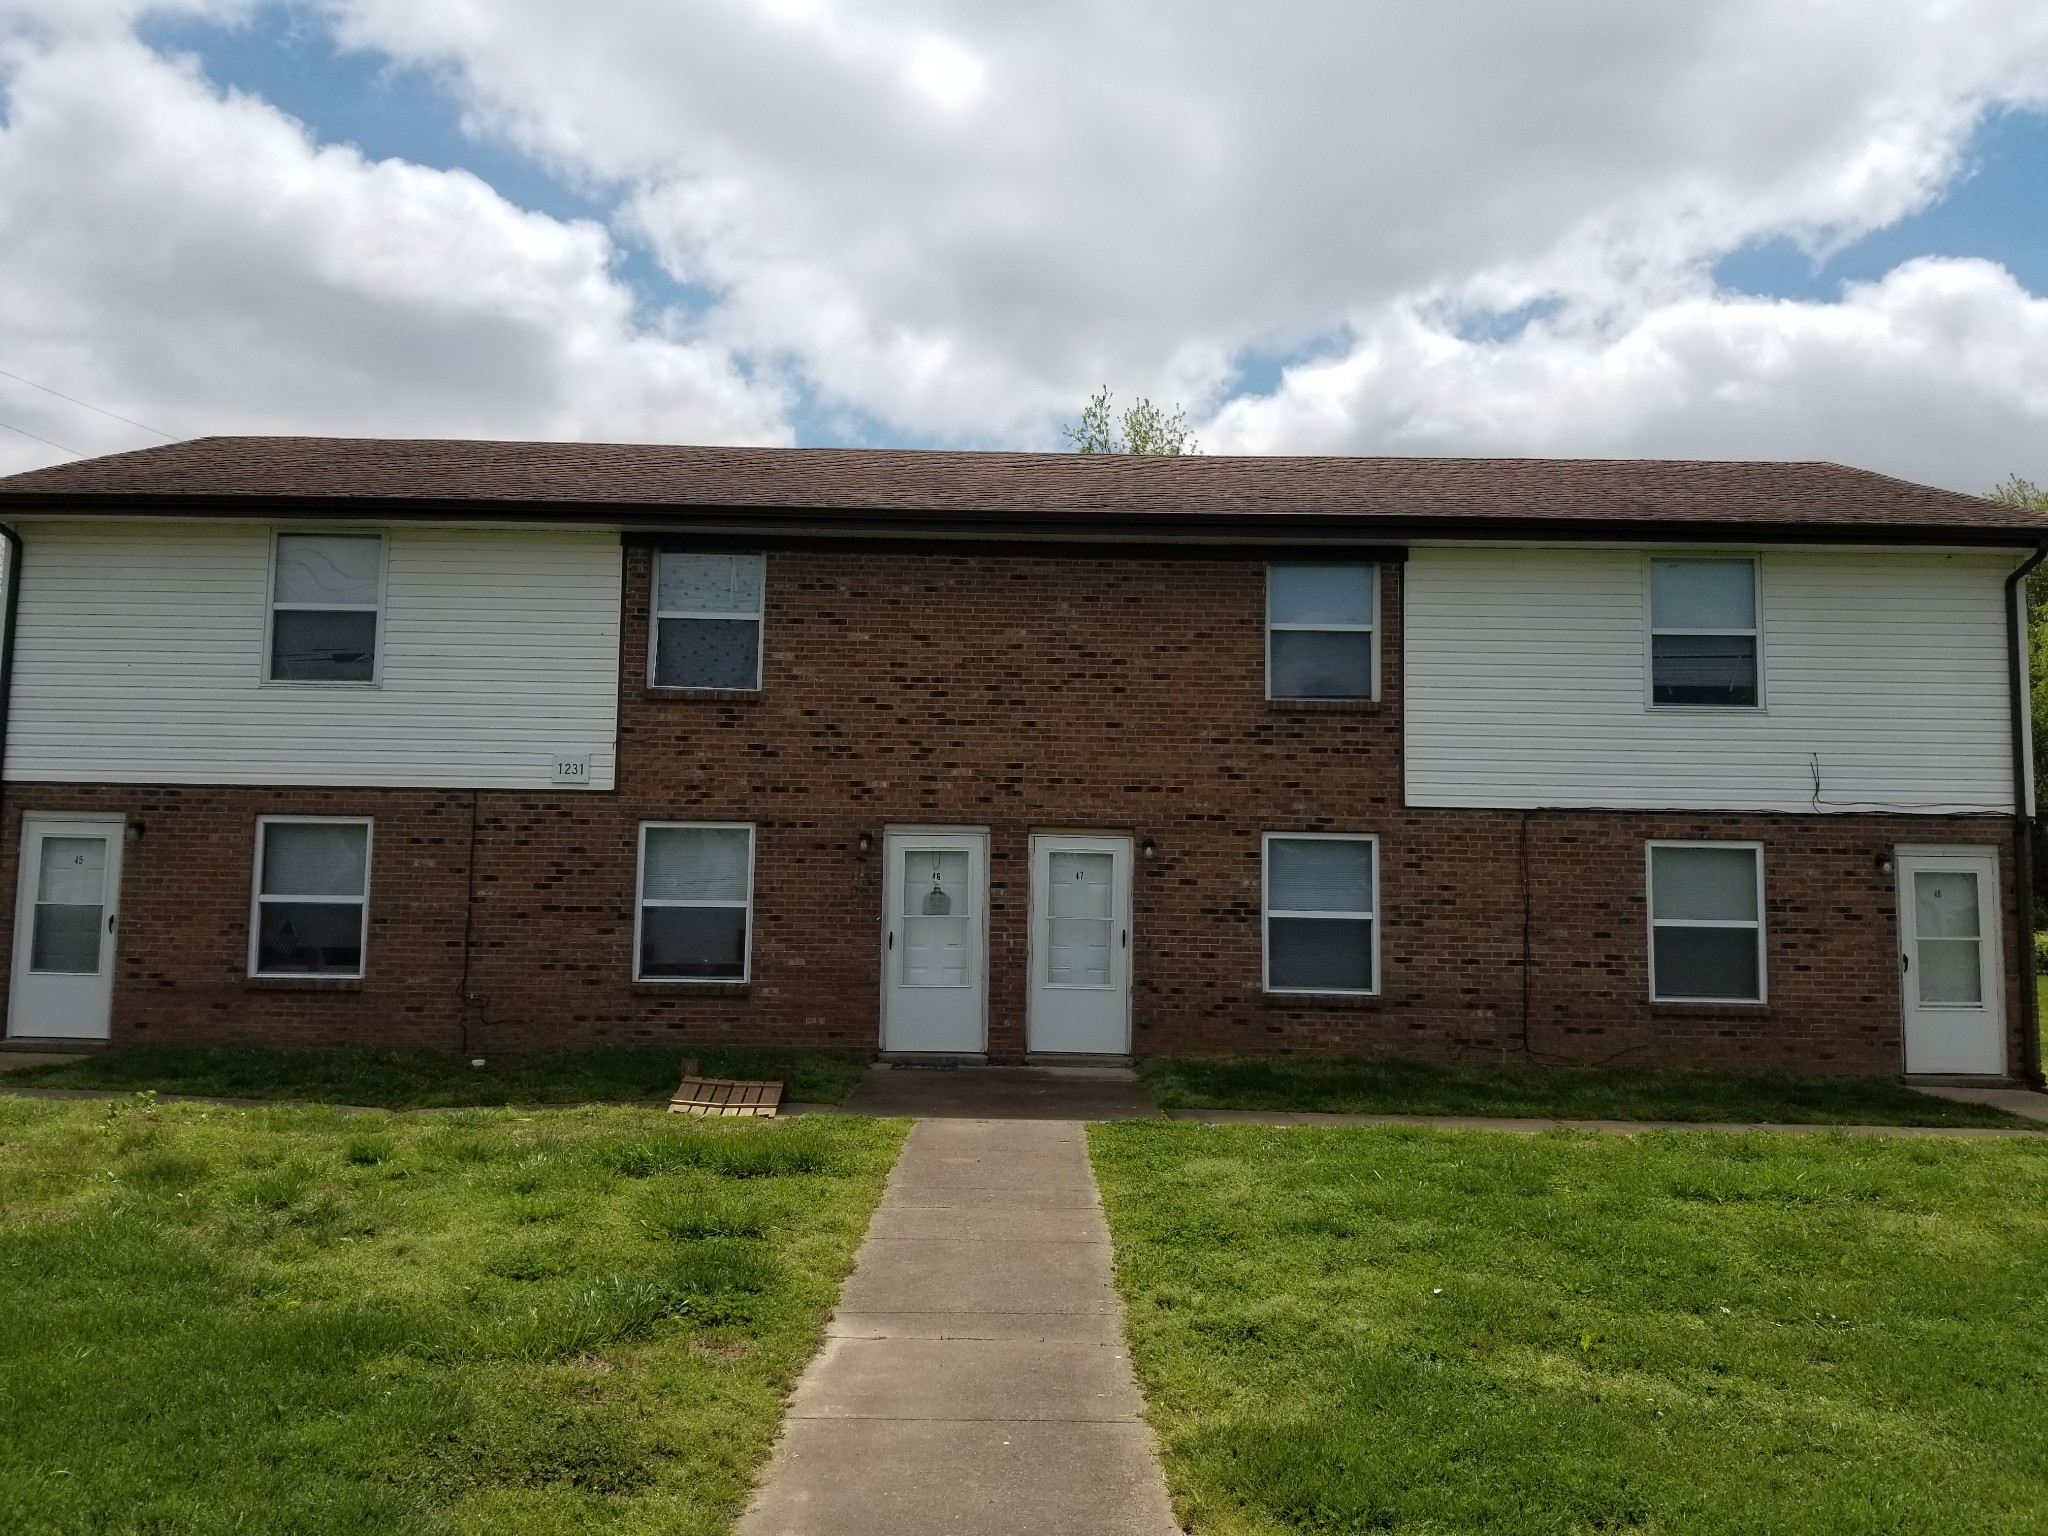 1231 Stateline Road, Oak Grove, KY 42262 - Oak Grove, KY real estate listing